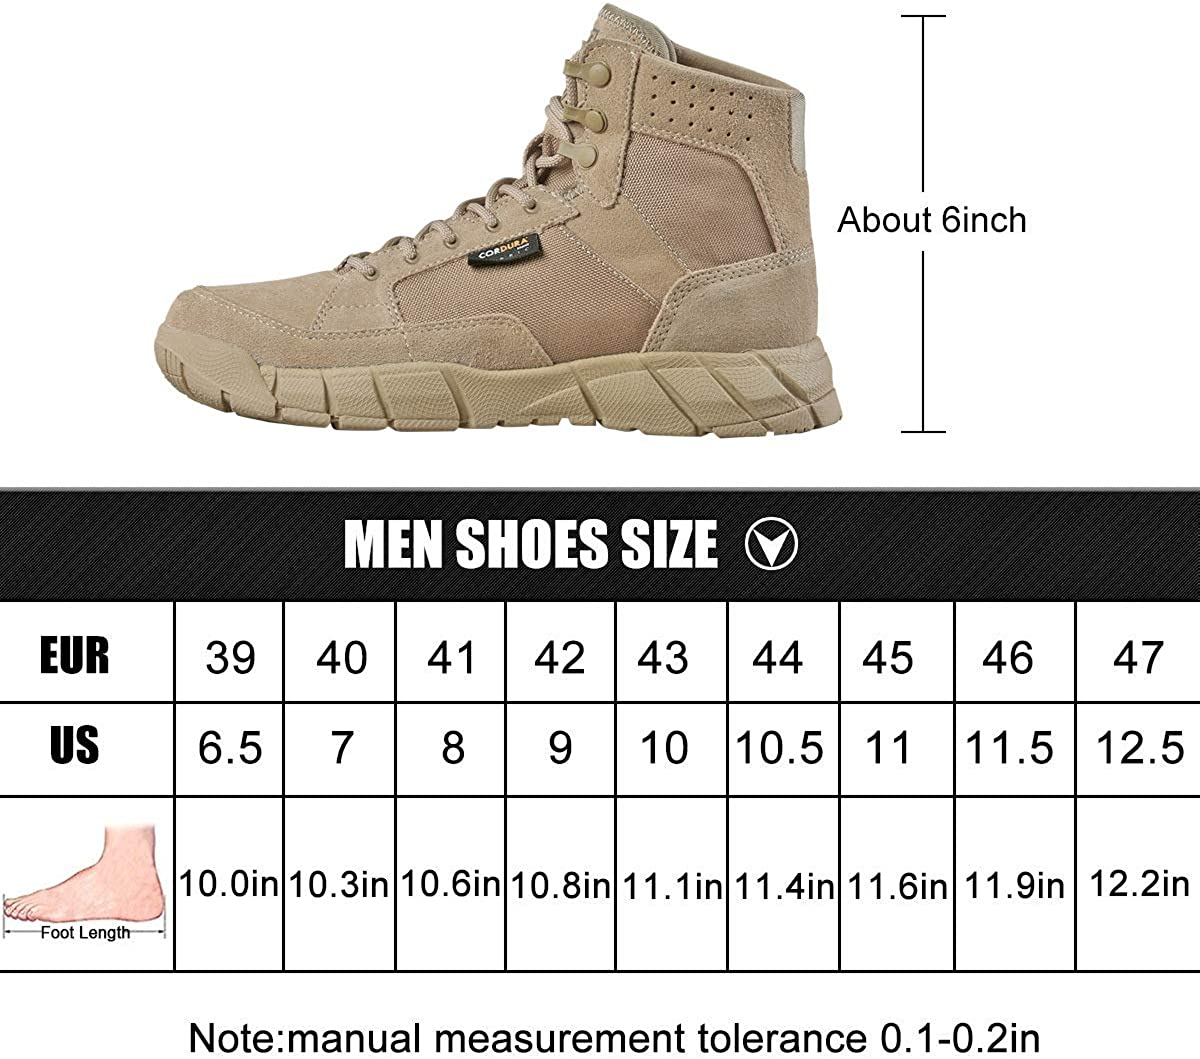 FREE SOLDIER Mens Boots Ultralight Military Tactical Work Boots 6 Inch high-tops Lace Up Breathable Desert Boots for Hiking Walking